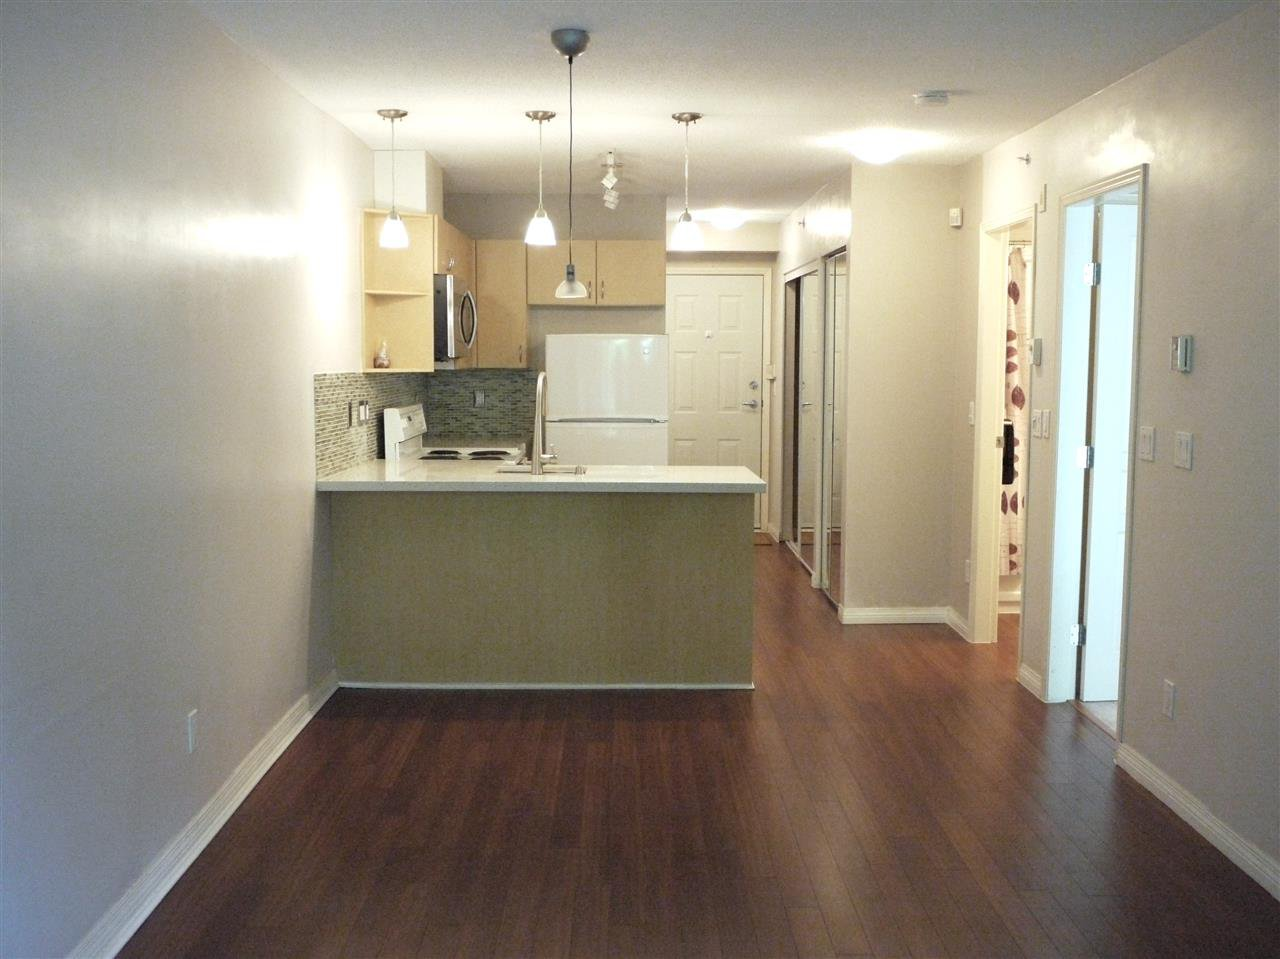 """Main Photo: 410 528 ROCHESTER Avenue in Coquitlam: Coquitlam West Condo for sale in """"THE AVE"""" : MLS®# R2106943"""